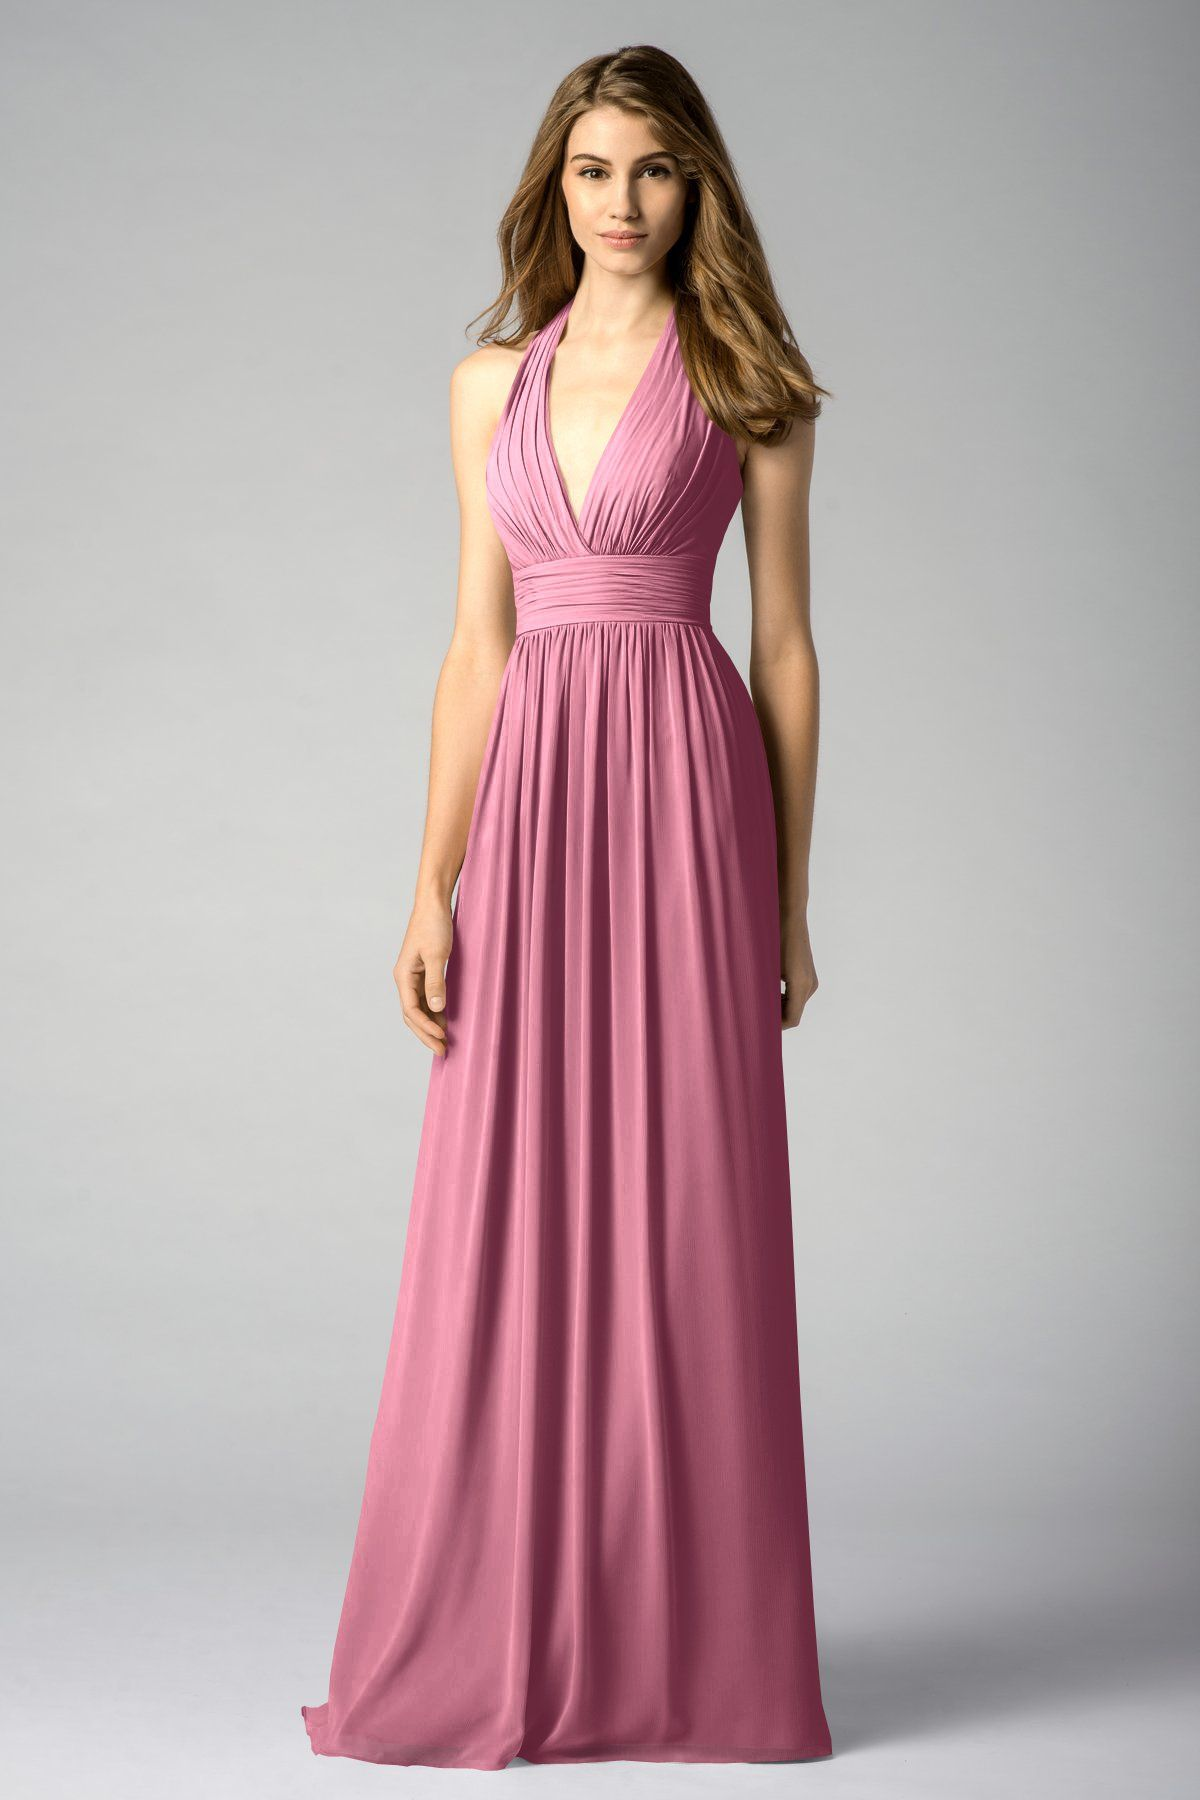 Josephine | Bridesmaid dresses | Pinterest